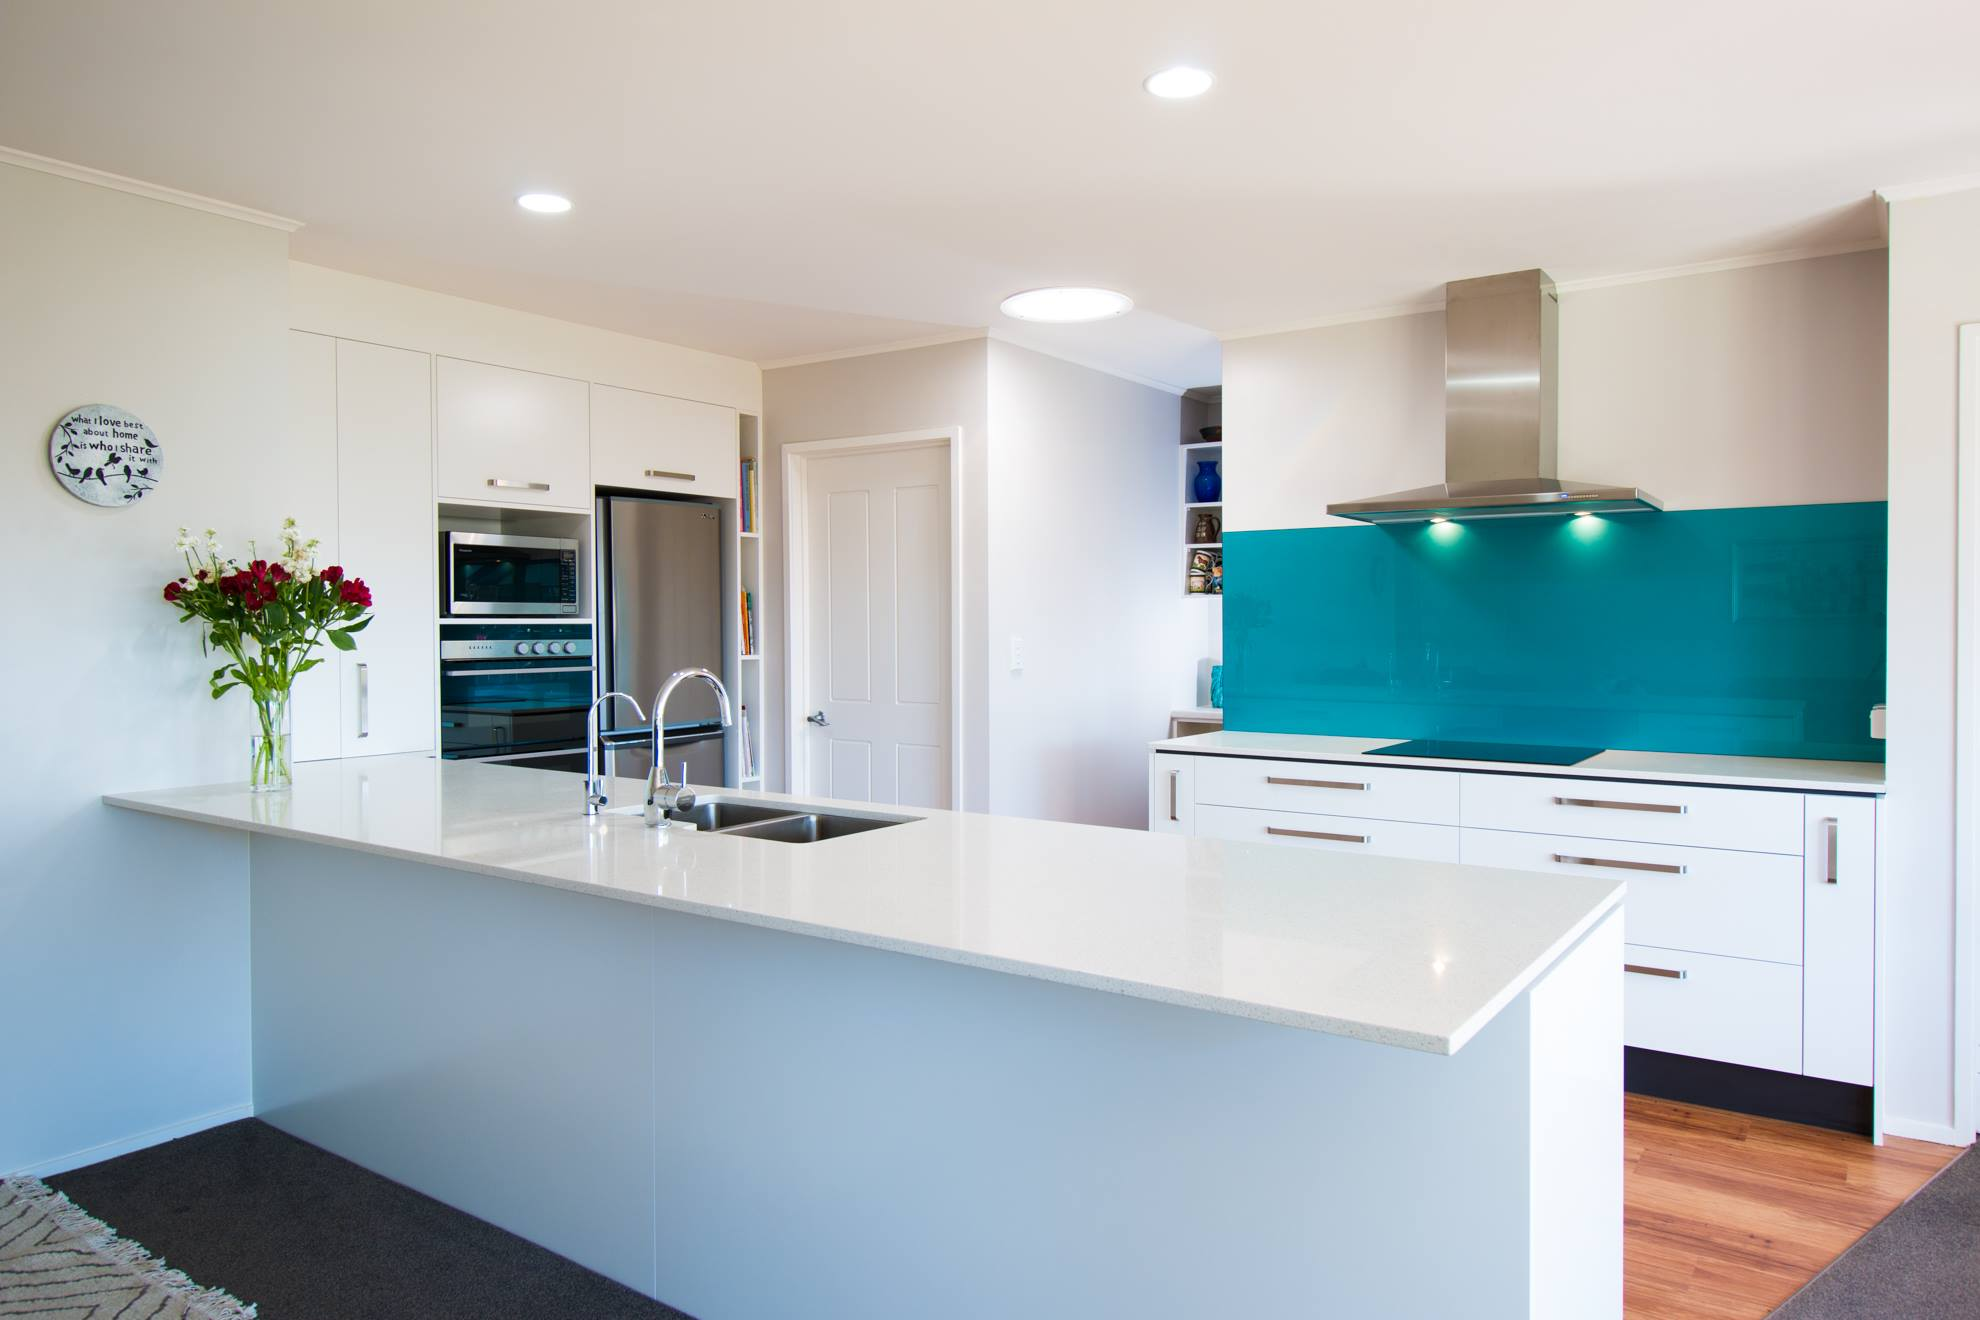 Taumarunui Taupo Kitchen Design Gallery | LPS Cabinetry